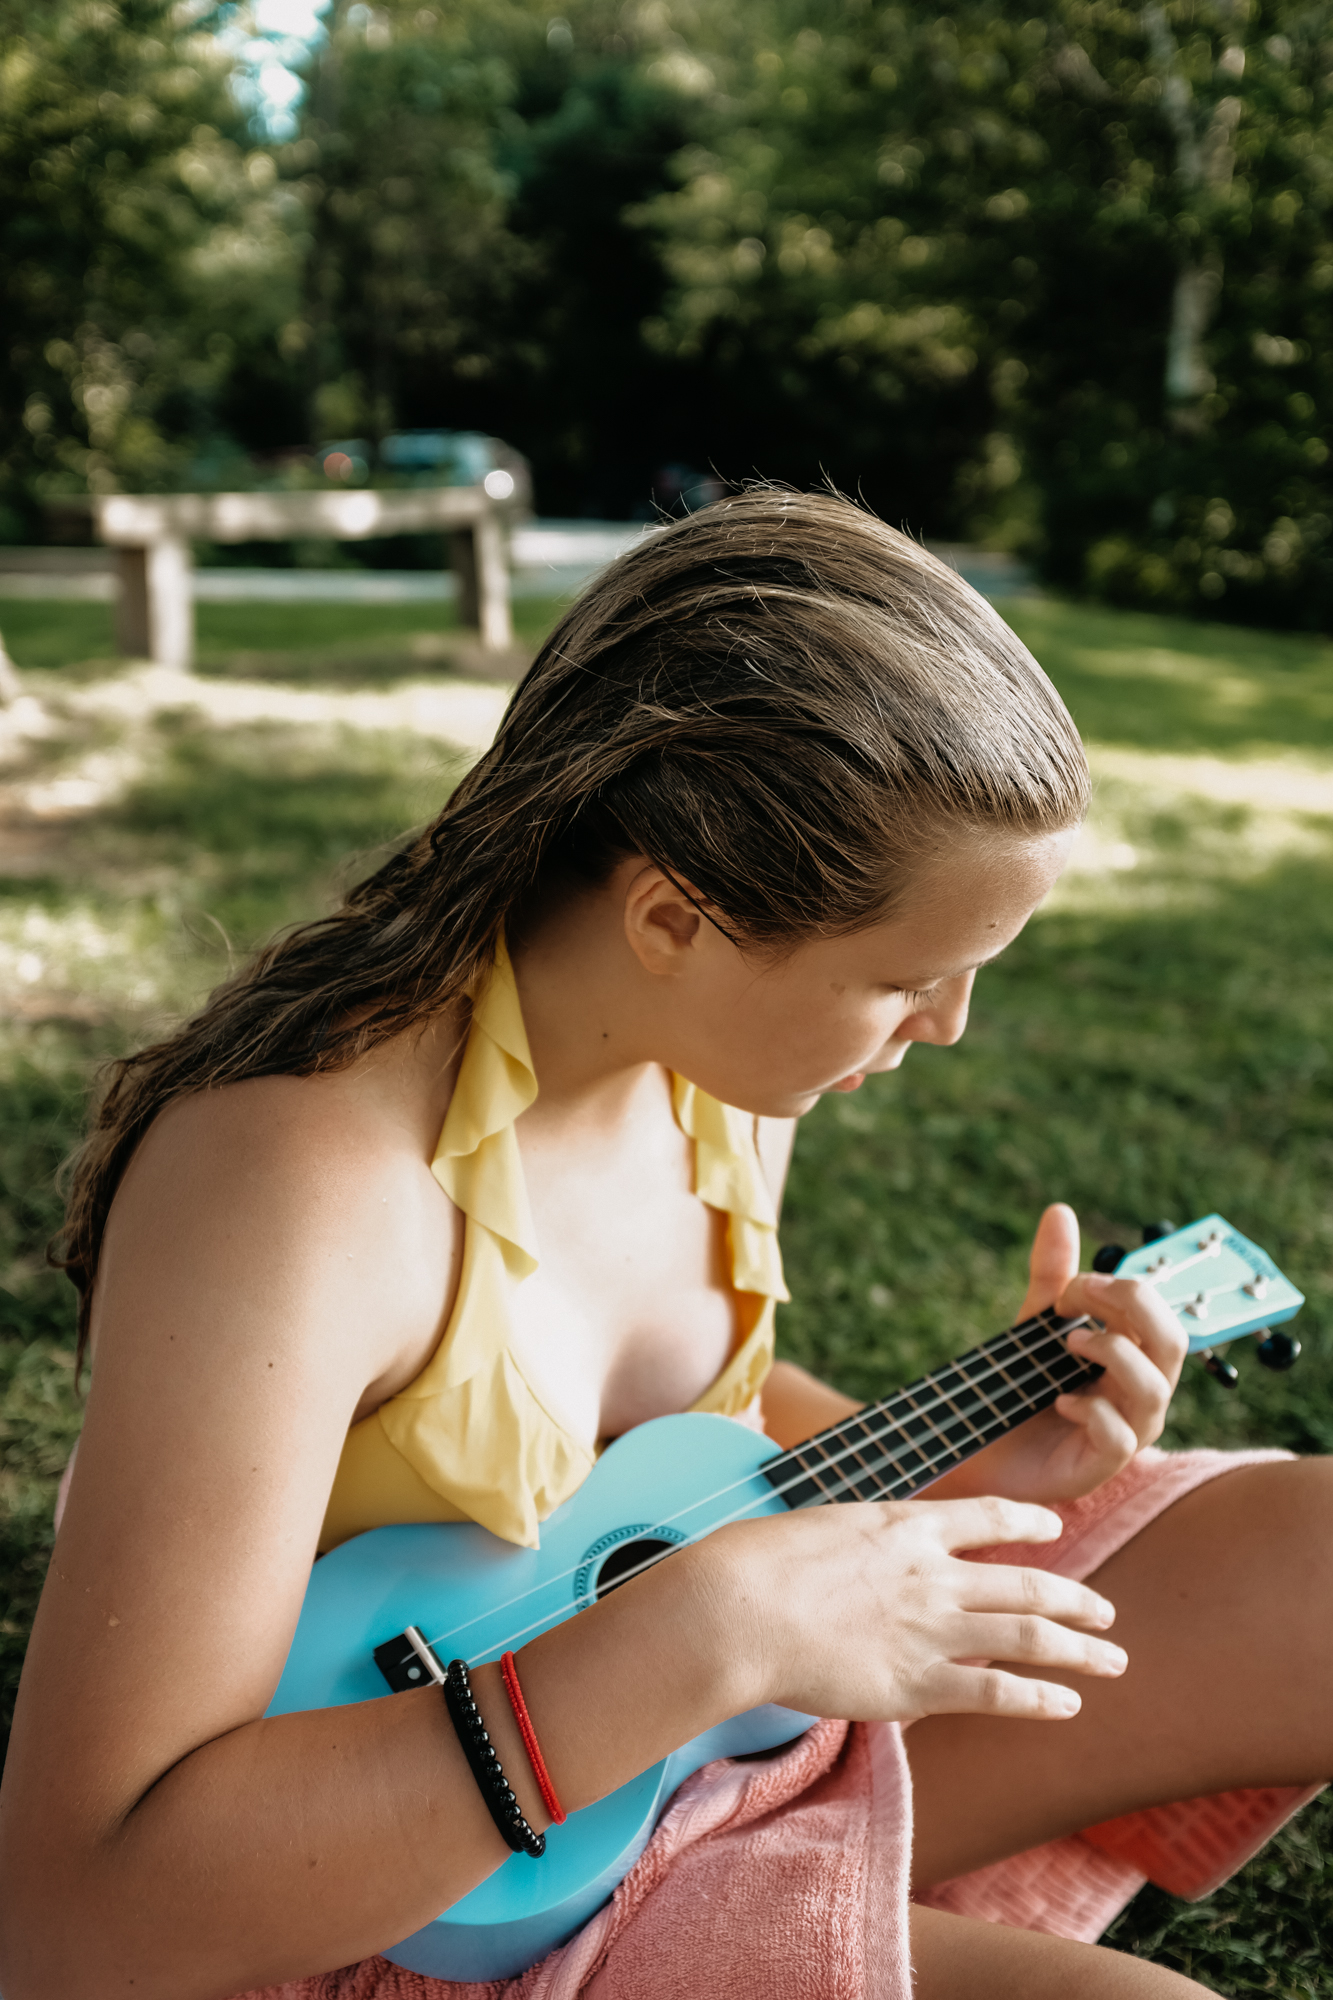 A blond girl plays a blue ukulele in a bathing suit.